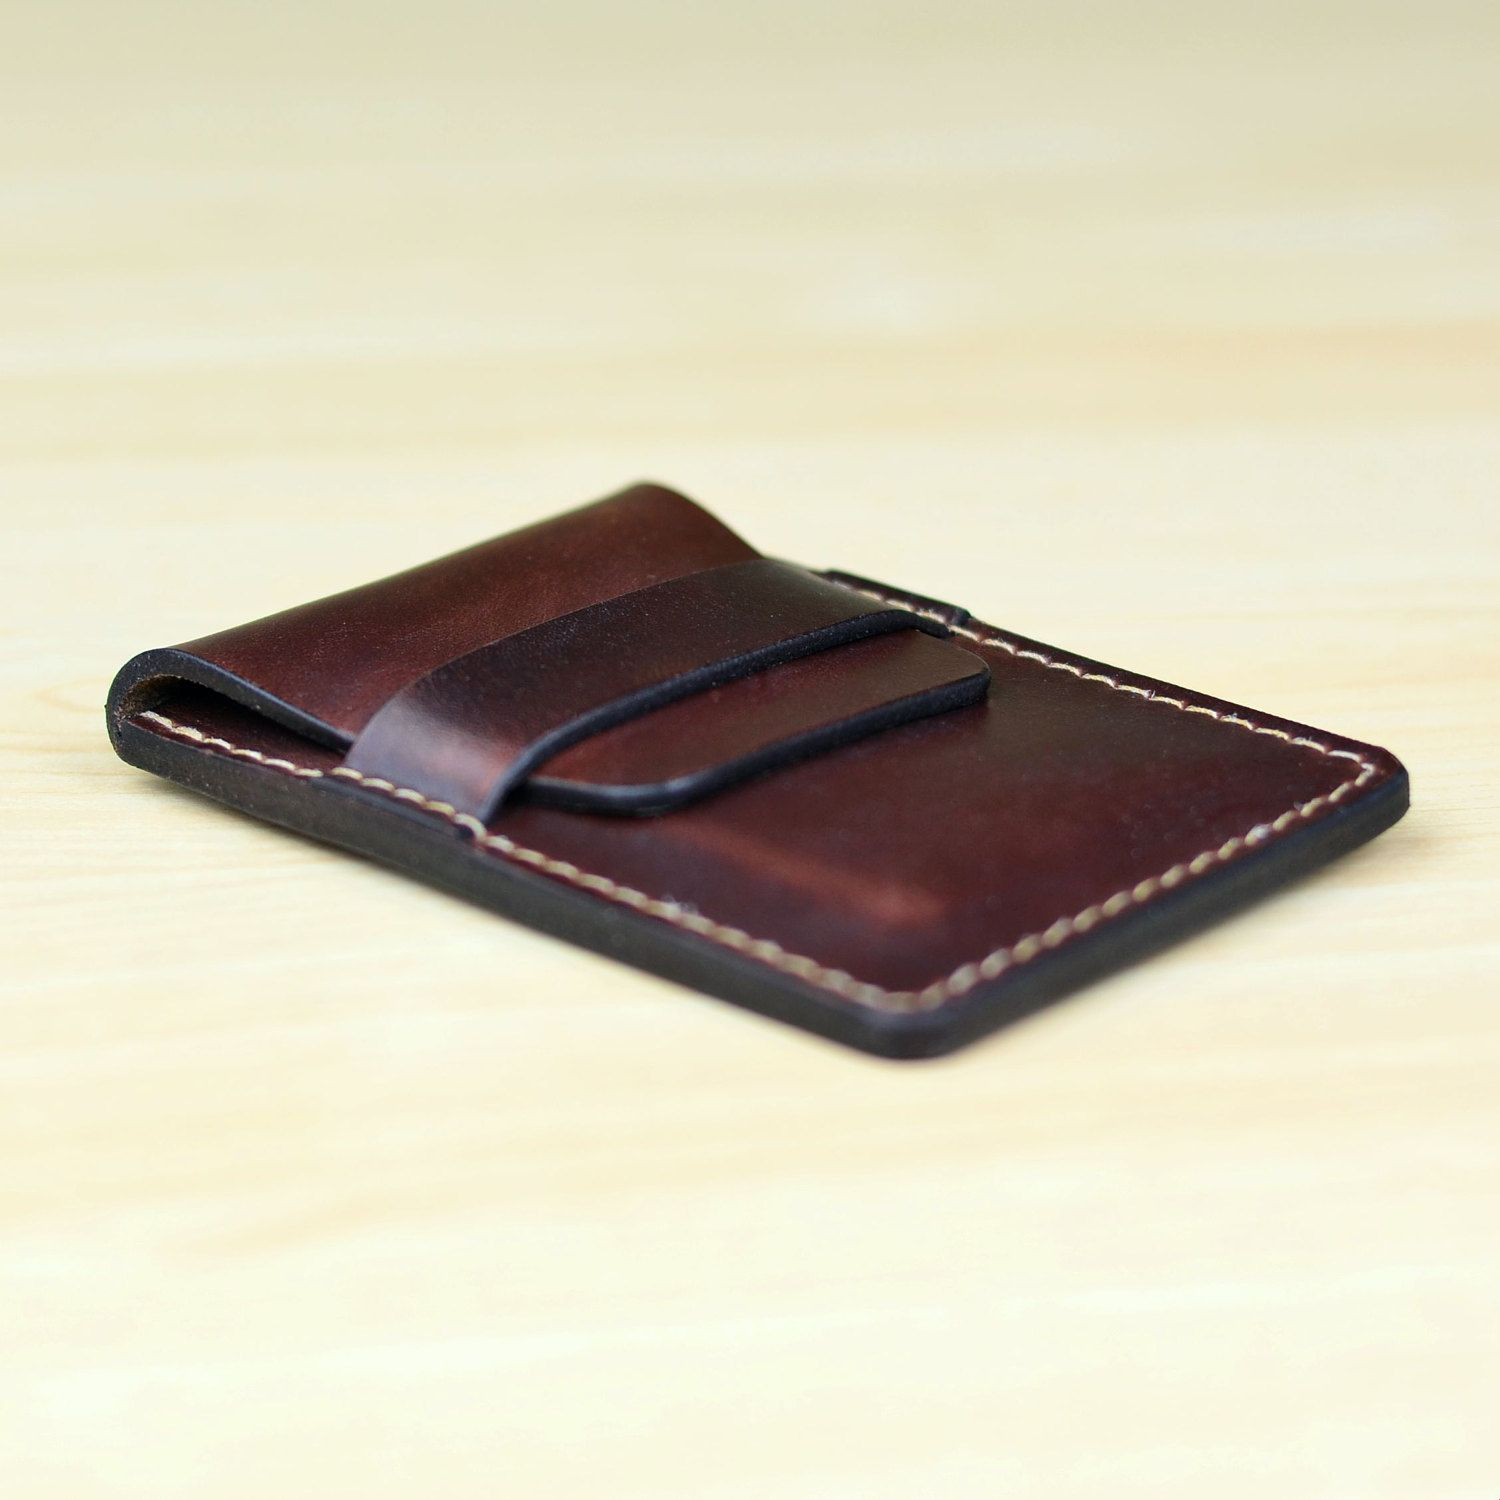 Leather business card holder personalized leather business card leather business card holder personalized leather business card case leather card case leather card wallet horween brown chromexcel colourmoves